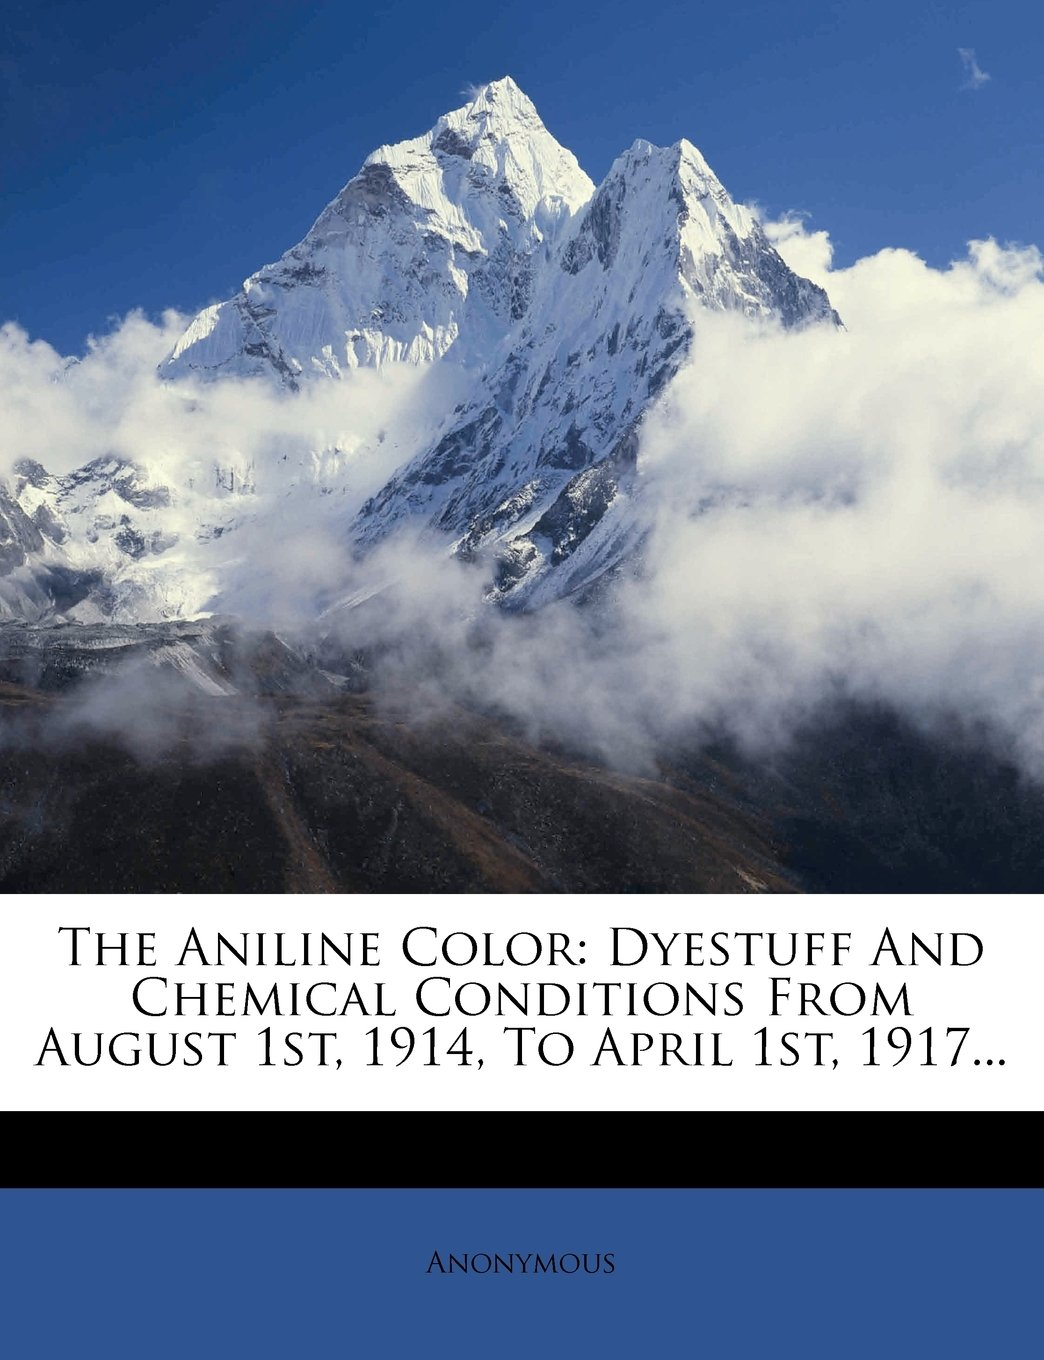 The Aniline Color: Dyestuff And Chemical Conditions From August 1st, 1914, To April 1st, 1917... PDF